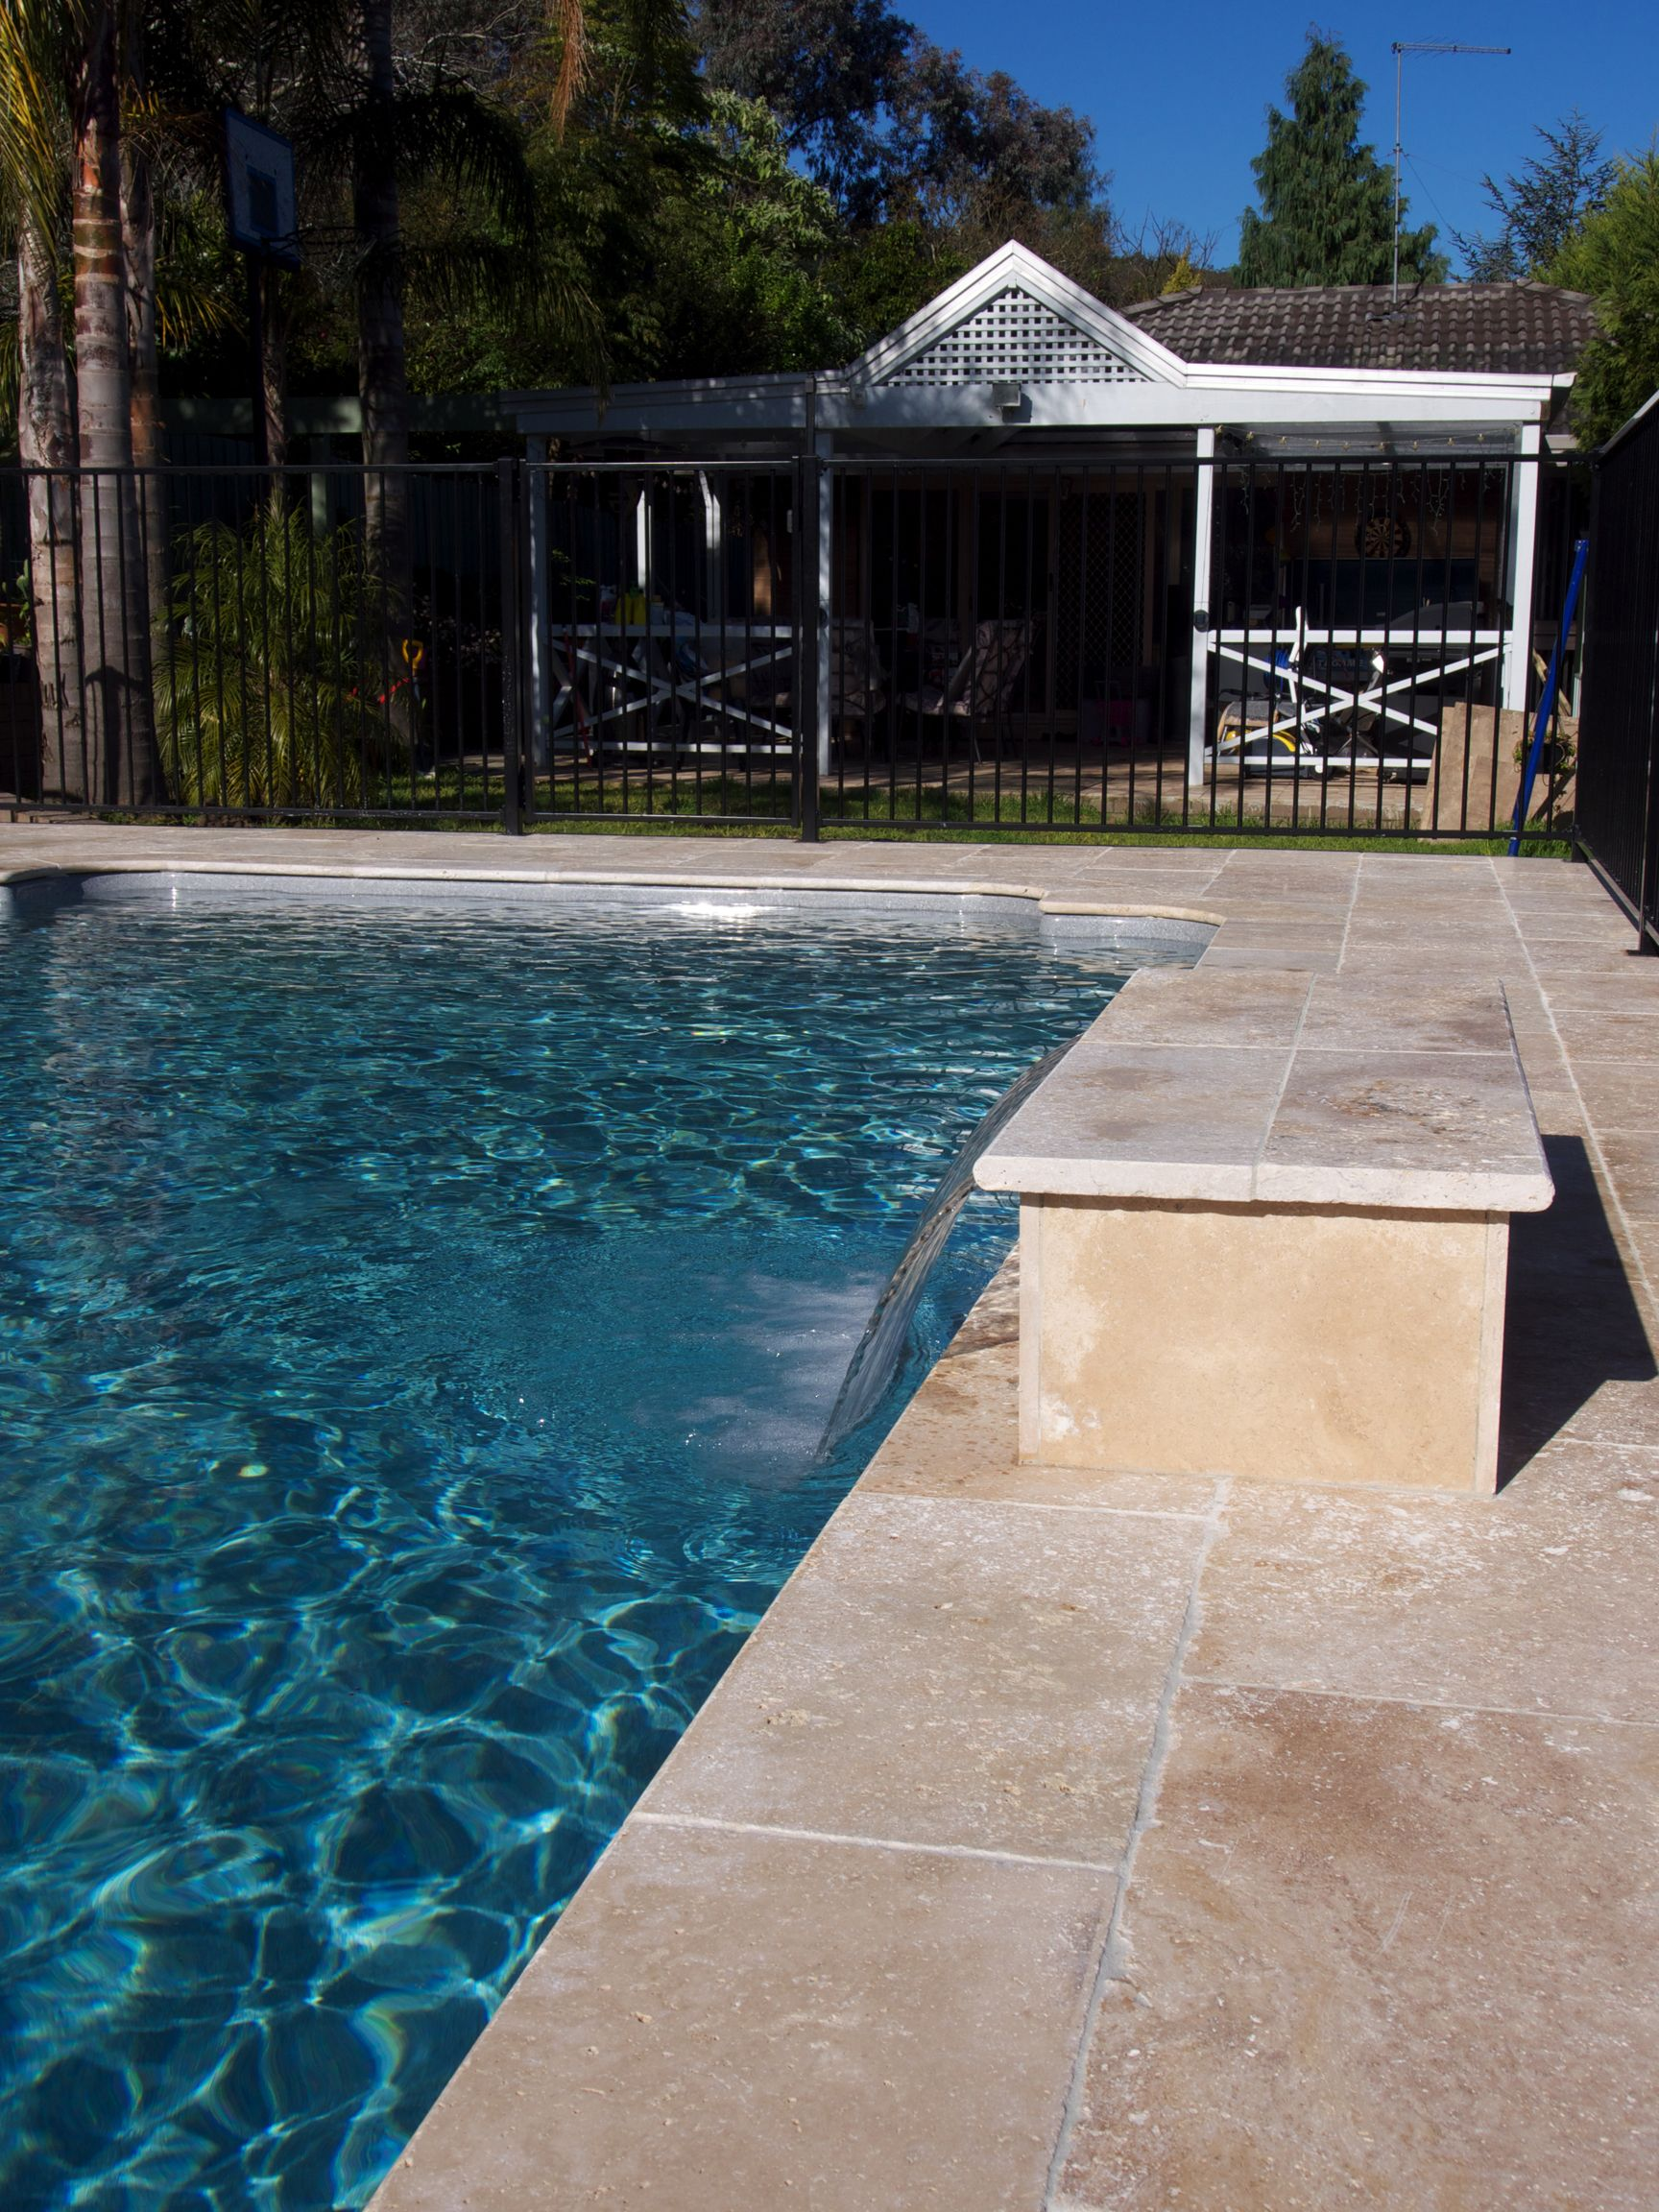 Natural Stone Suppliers Melbourne Cheap Pavers Melbourne Outdoor Pool Area Pool Landscaping Pool Pavers